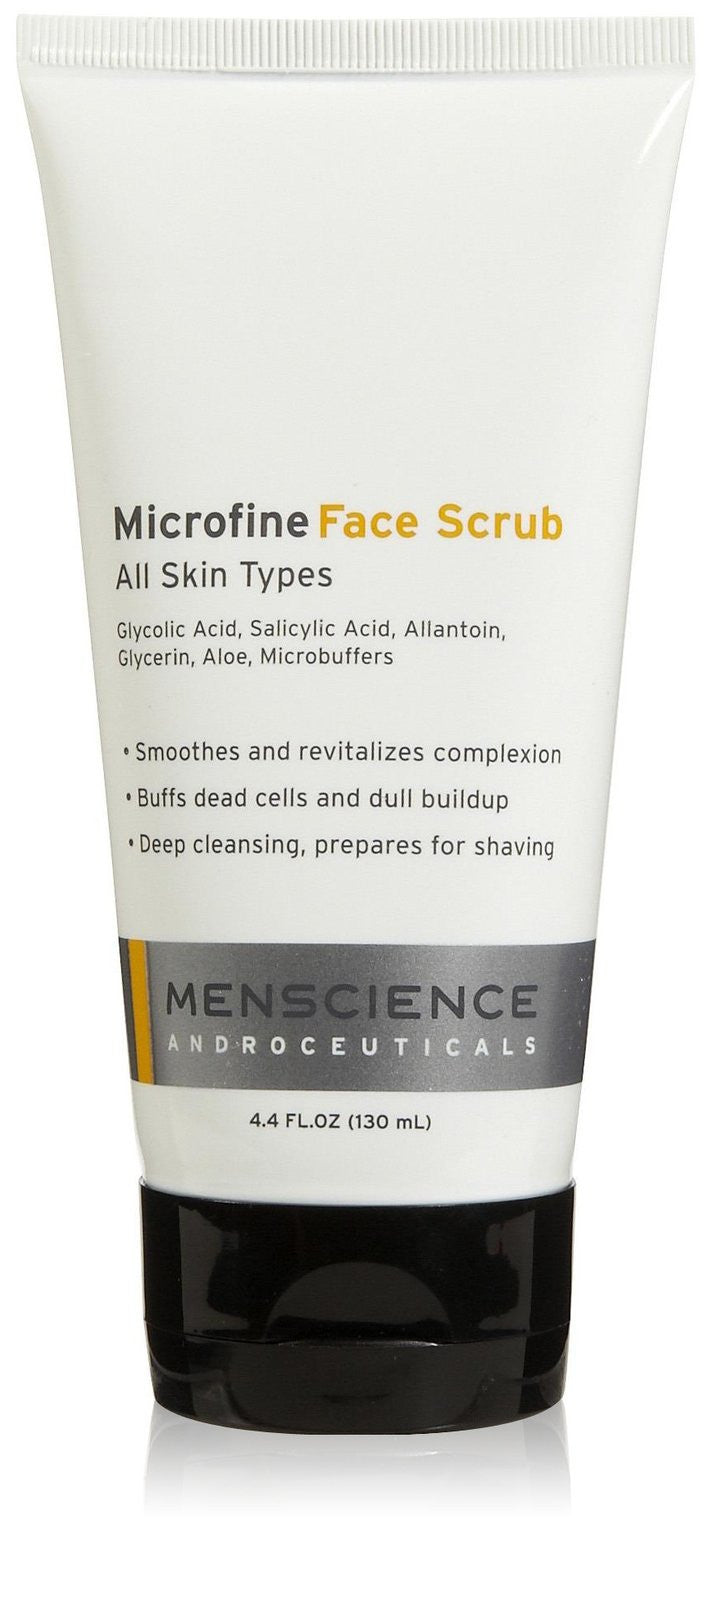 microfine face scrub || menscience || beautybar